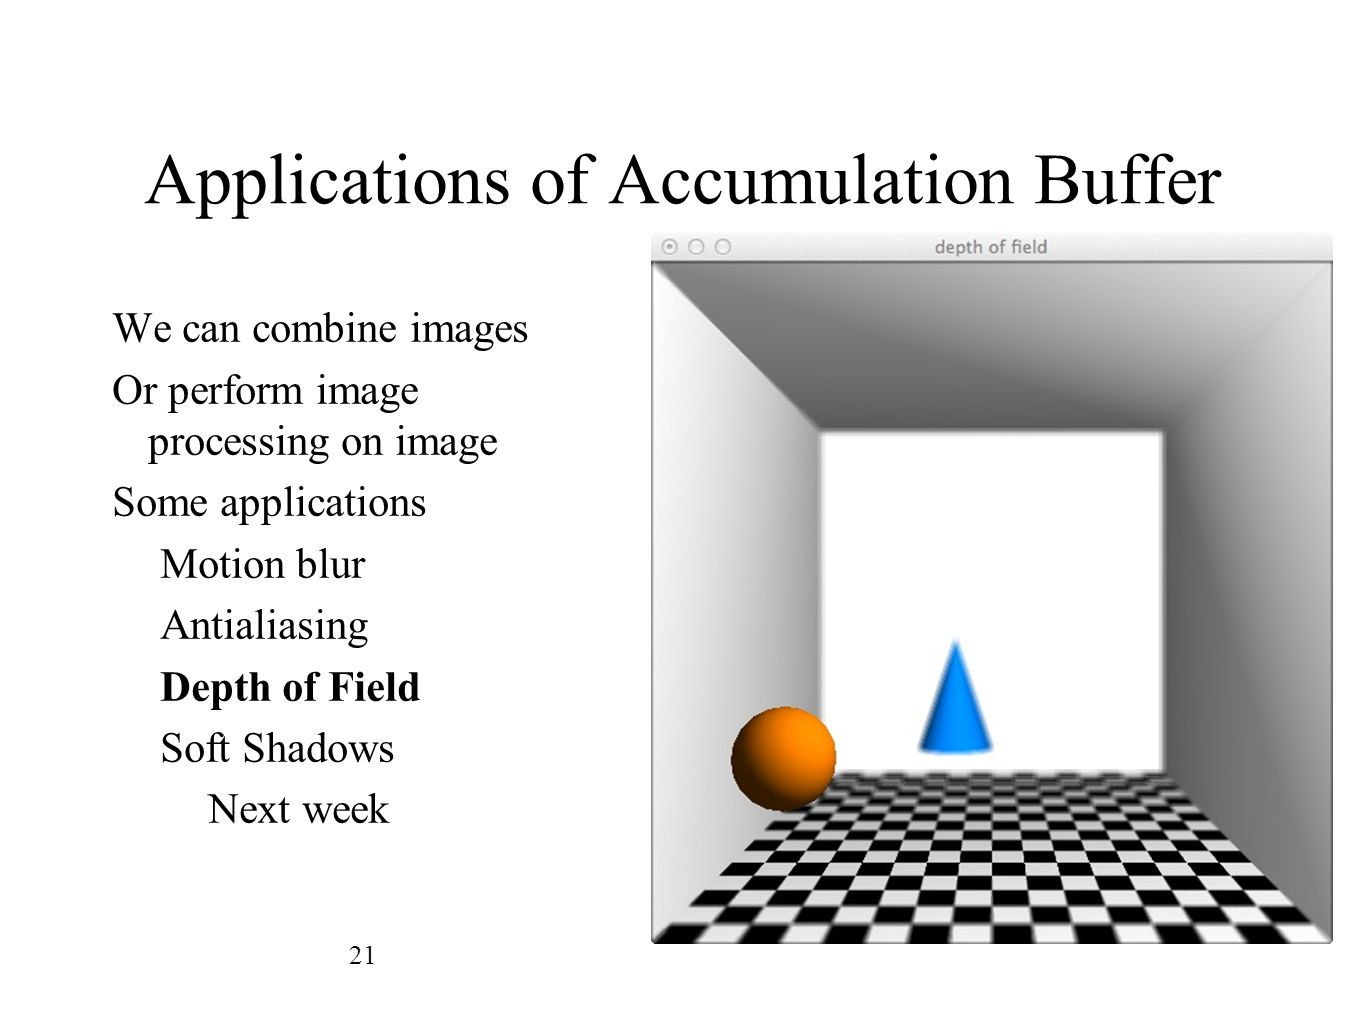 Applications of Accumulation Buffer